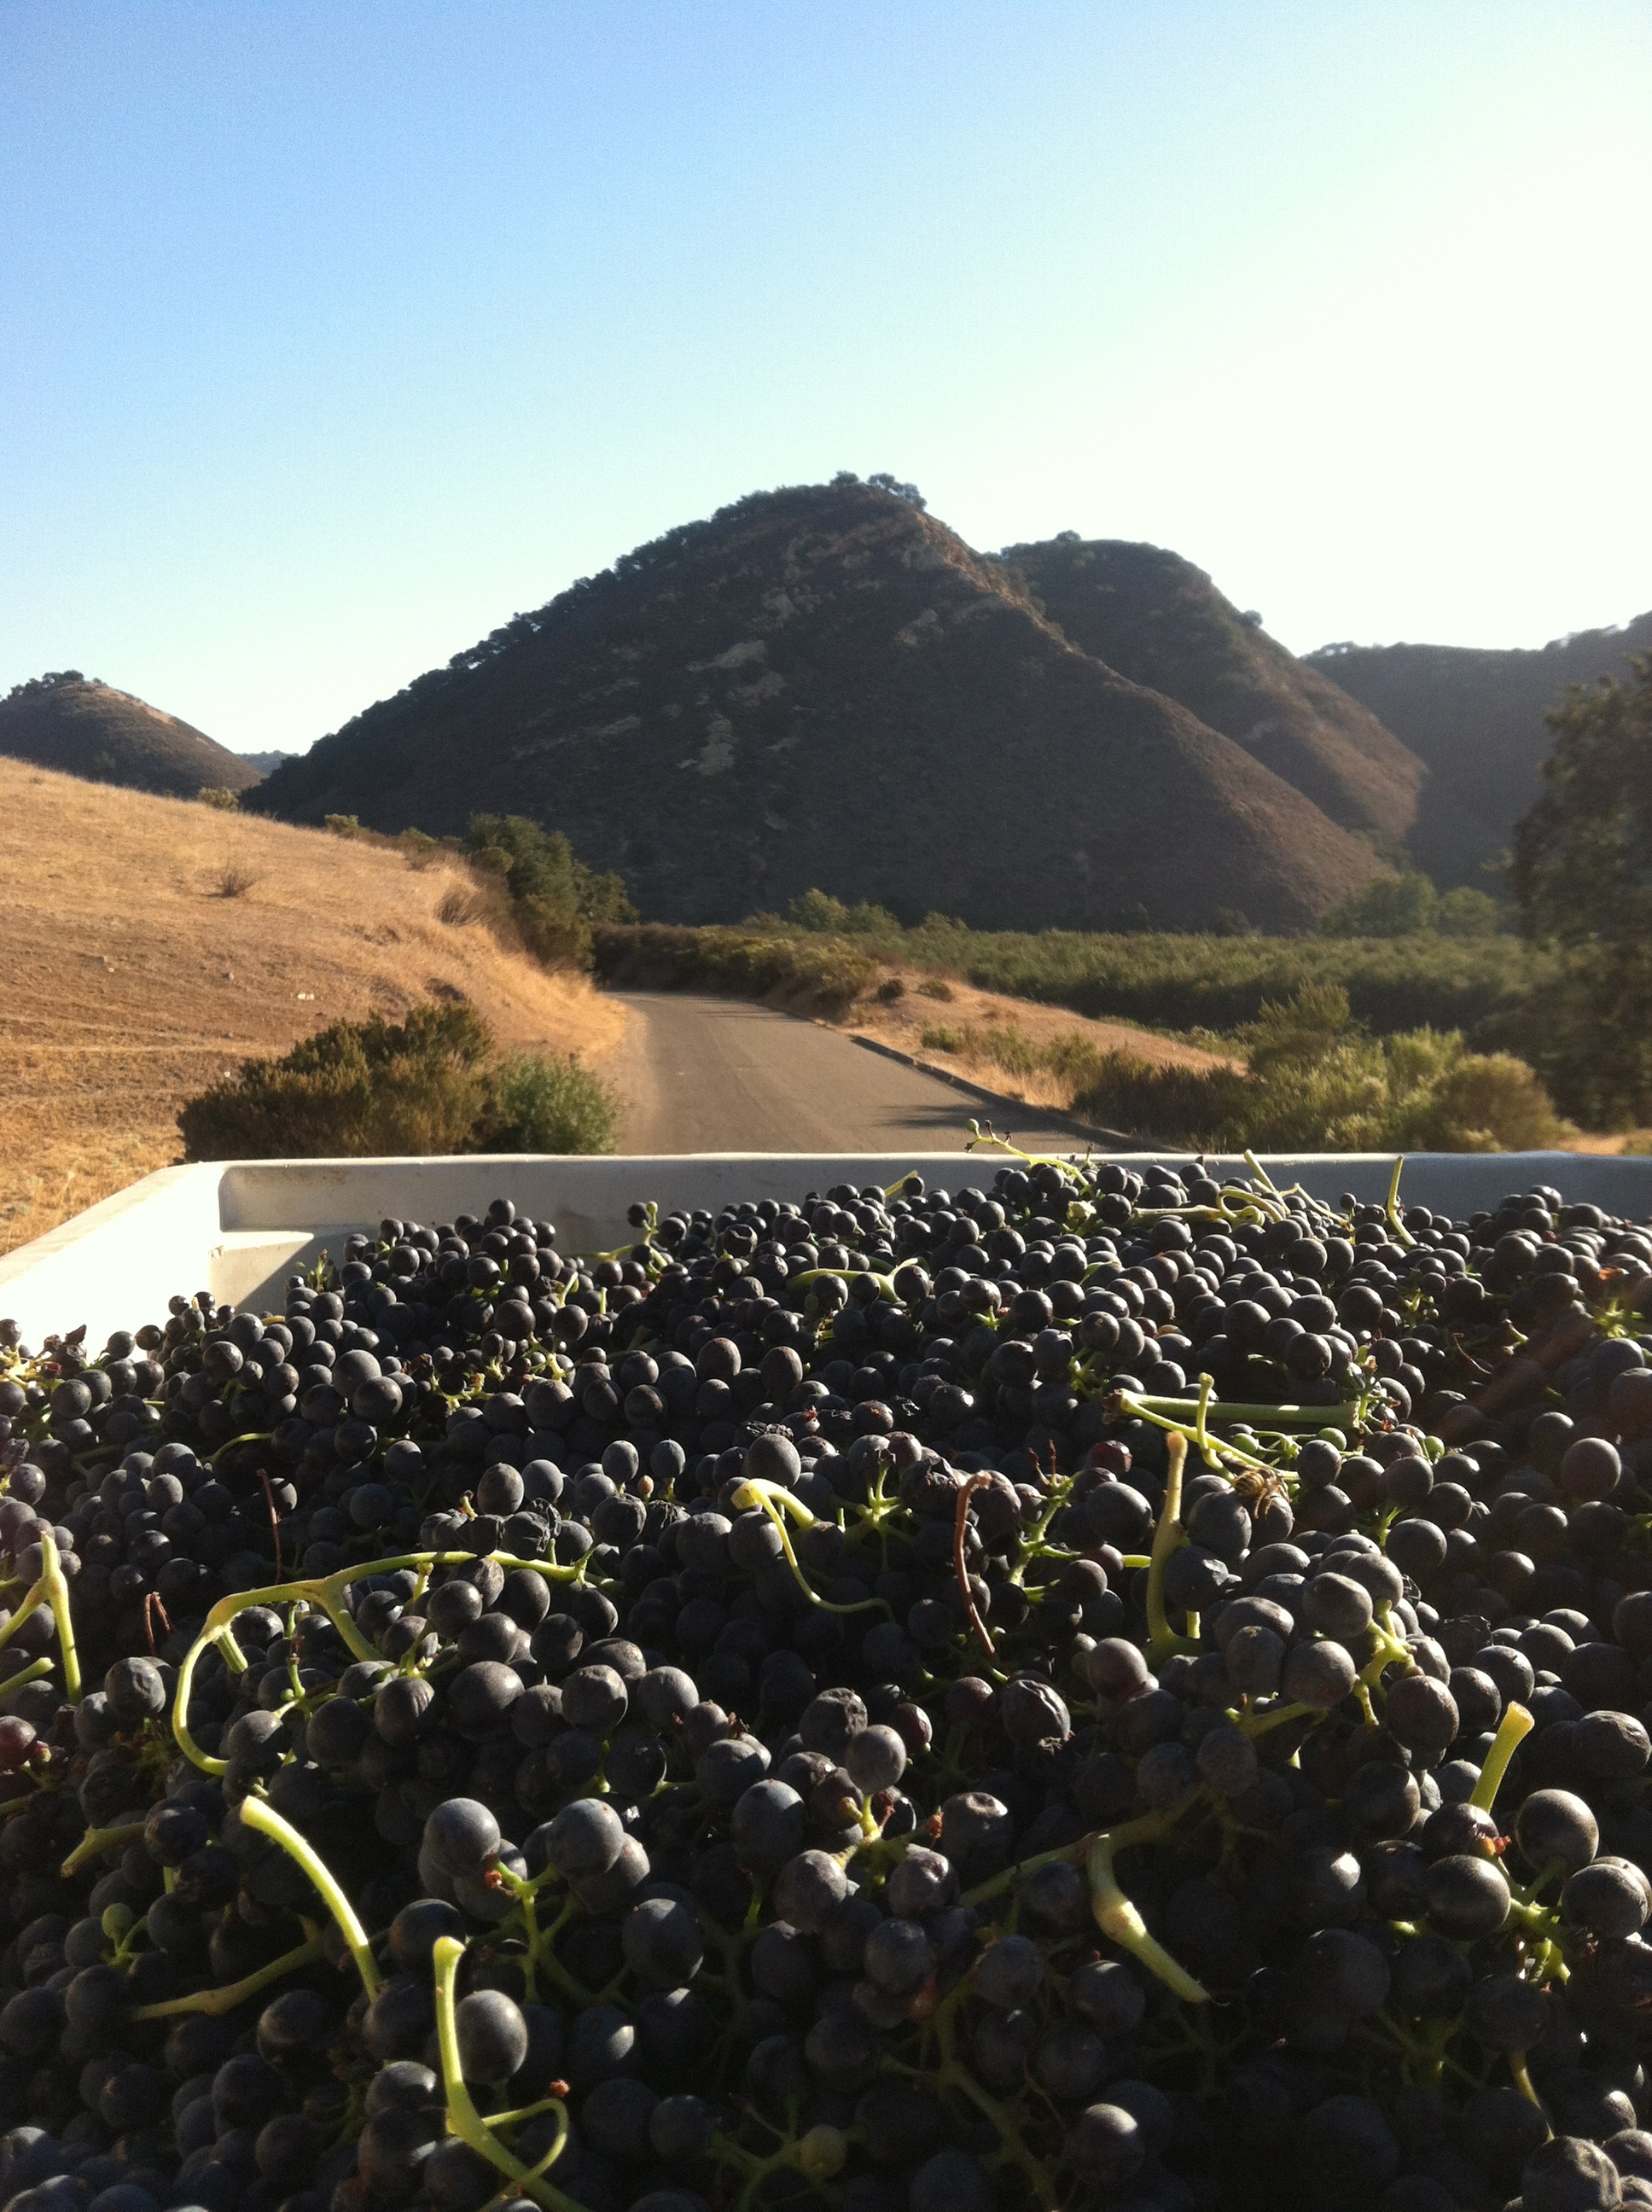 Just-picked Syrah grapes in vineyard